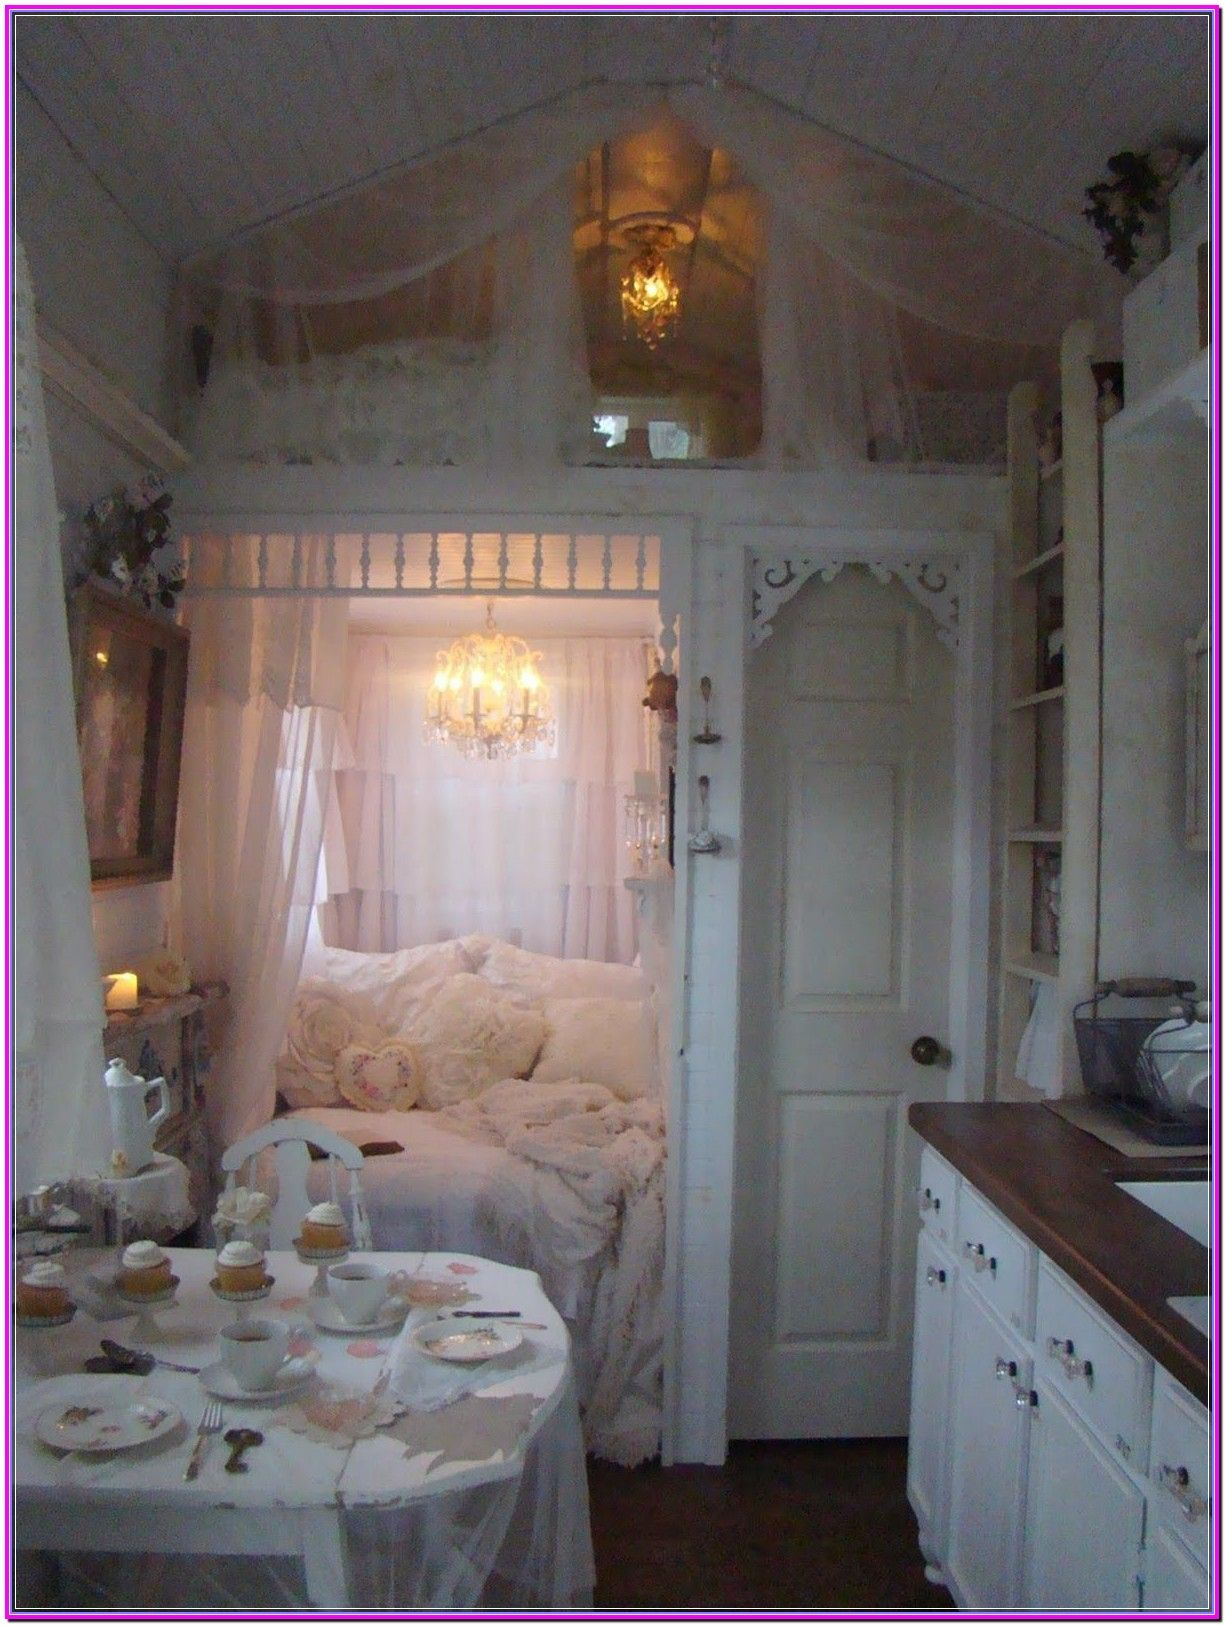 Home Improvement Every Homeowner Needs To Know Read More Info By Clicking The Link On The Image Shabby Chic Room Chic Bedroom Design Shabby Chic Bedrooms